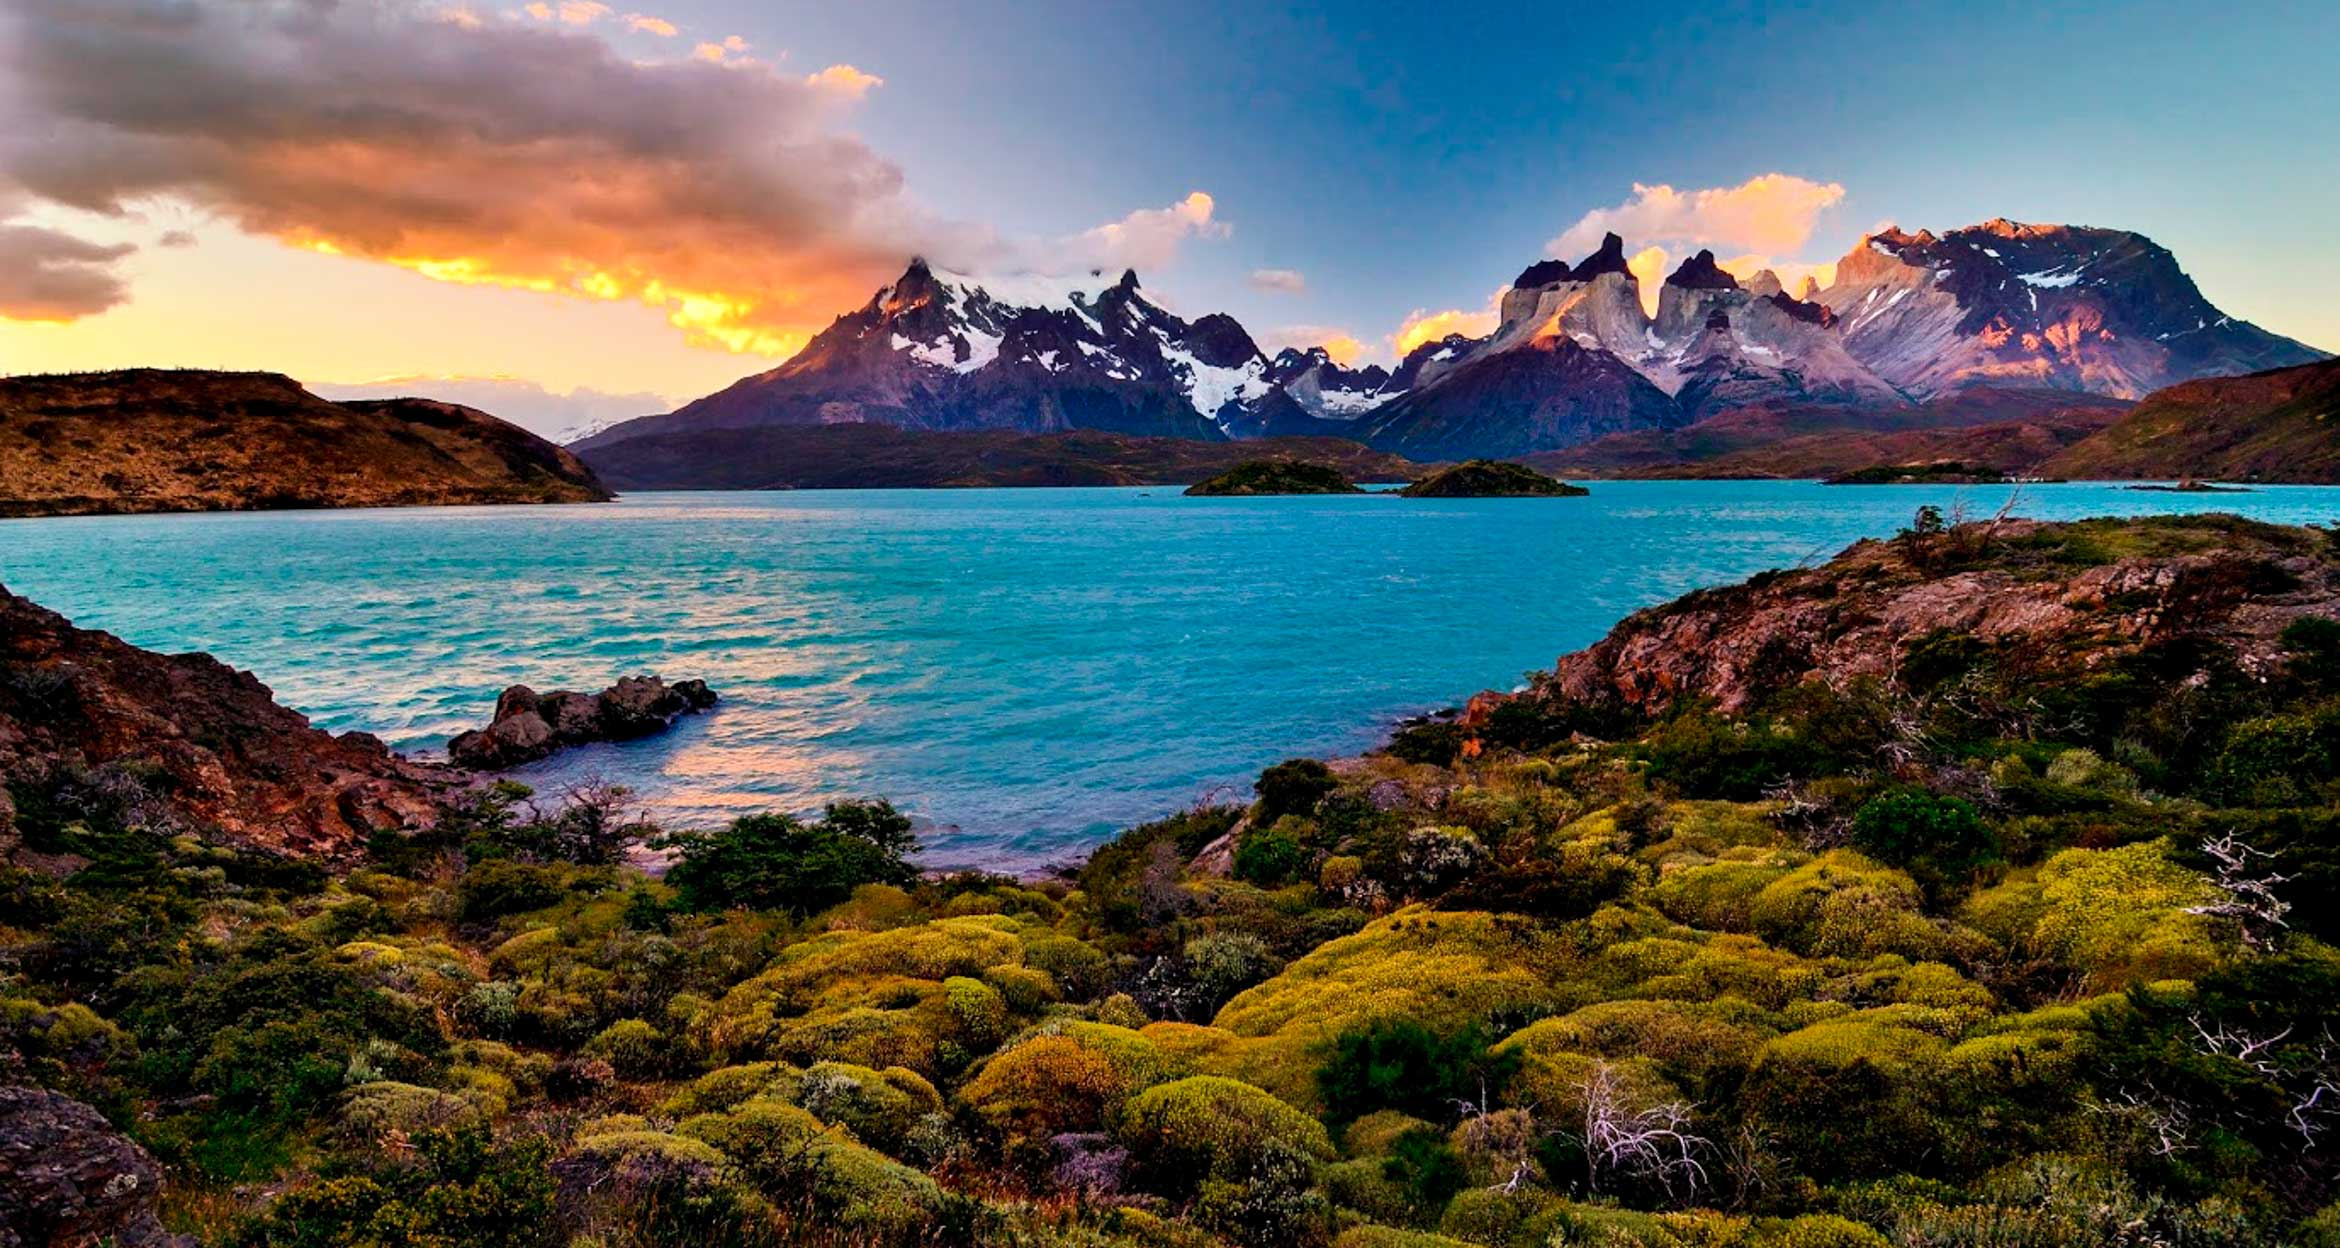 Patagonia mountains illuminated by sunset